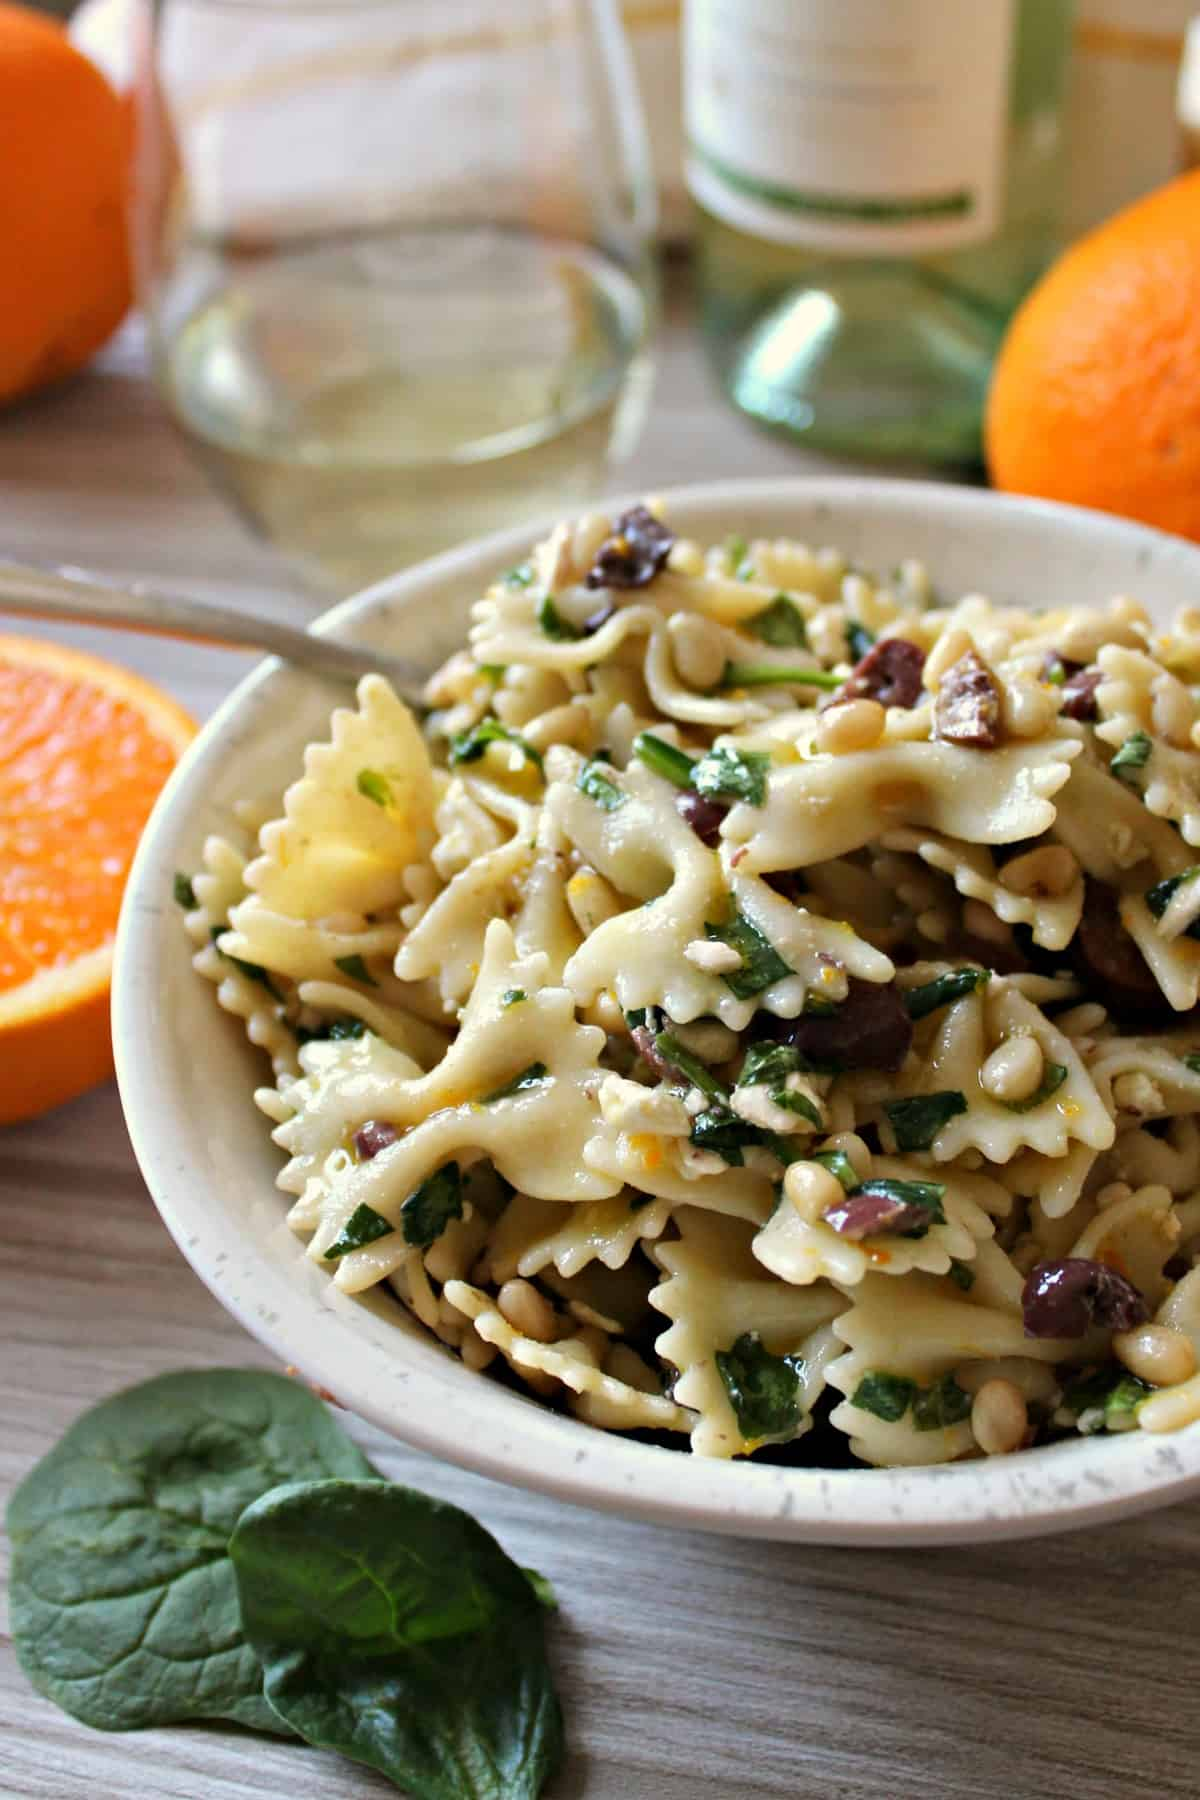 Citrusy Spinach, Olive, Feta & Pine Nut Pasta Salad is an ideal dish for laid back summer entertaining. Not only does it come together quickly, but it's also a great recipe to make ahead so you an focus on the best part of summertime: relaxing! Pair with light, refreshing Cavit Pinot Grigio for effortless elegance.